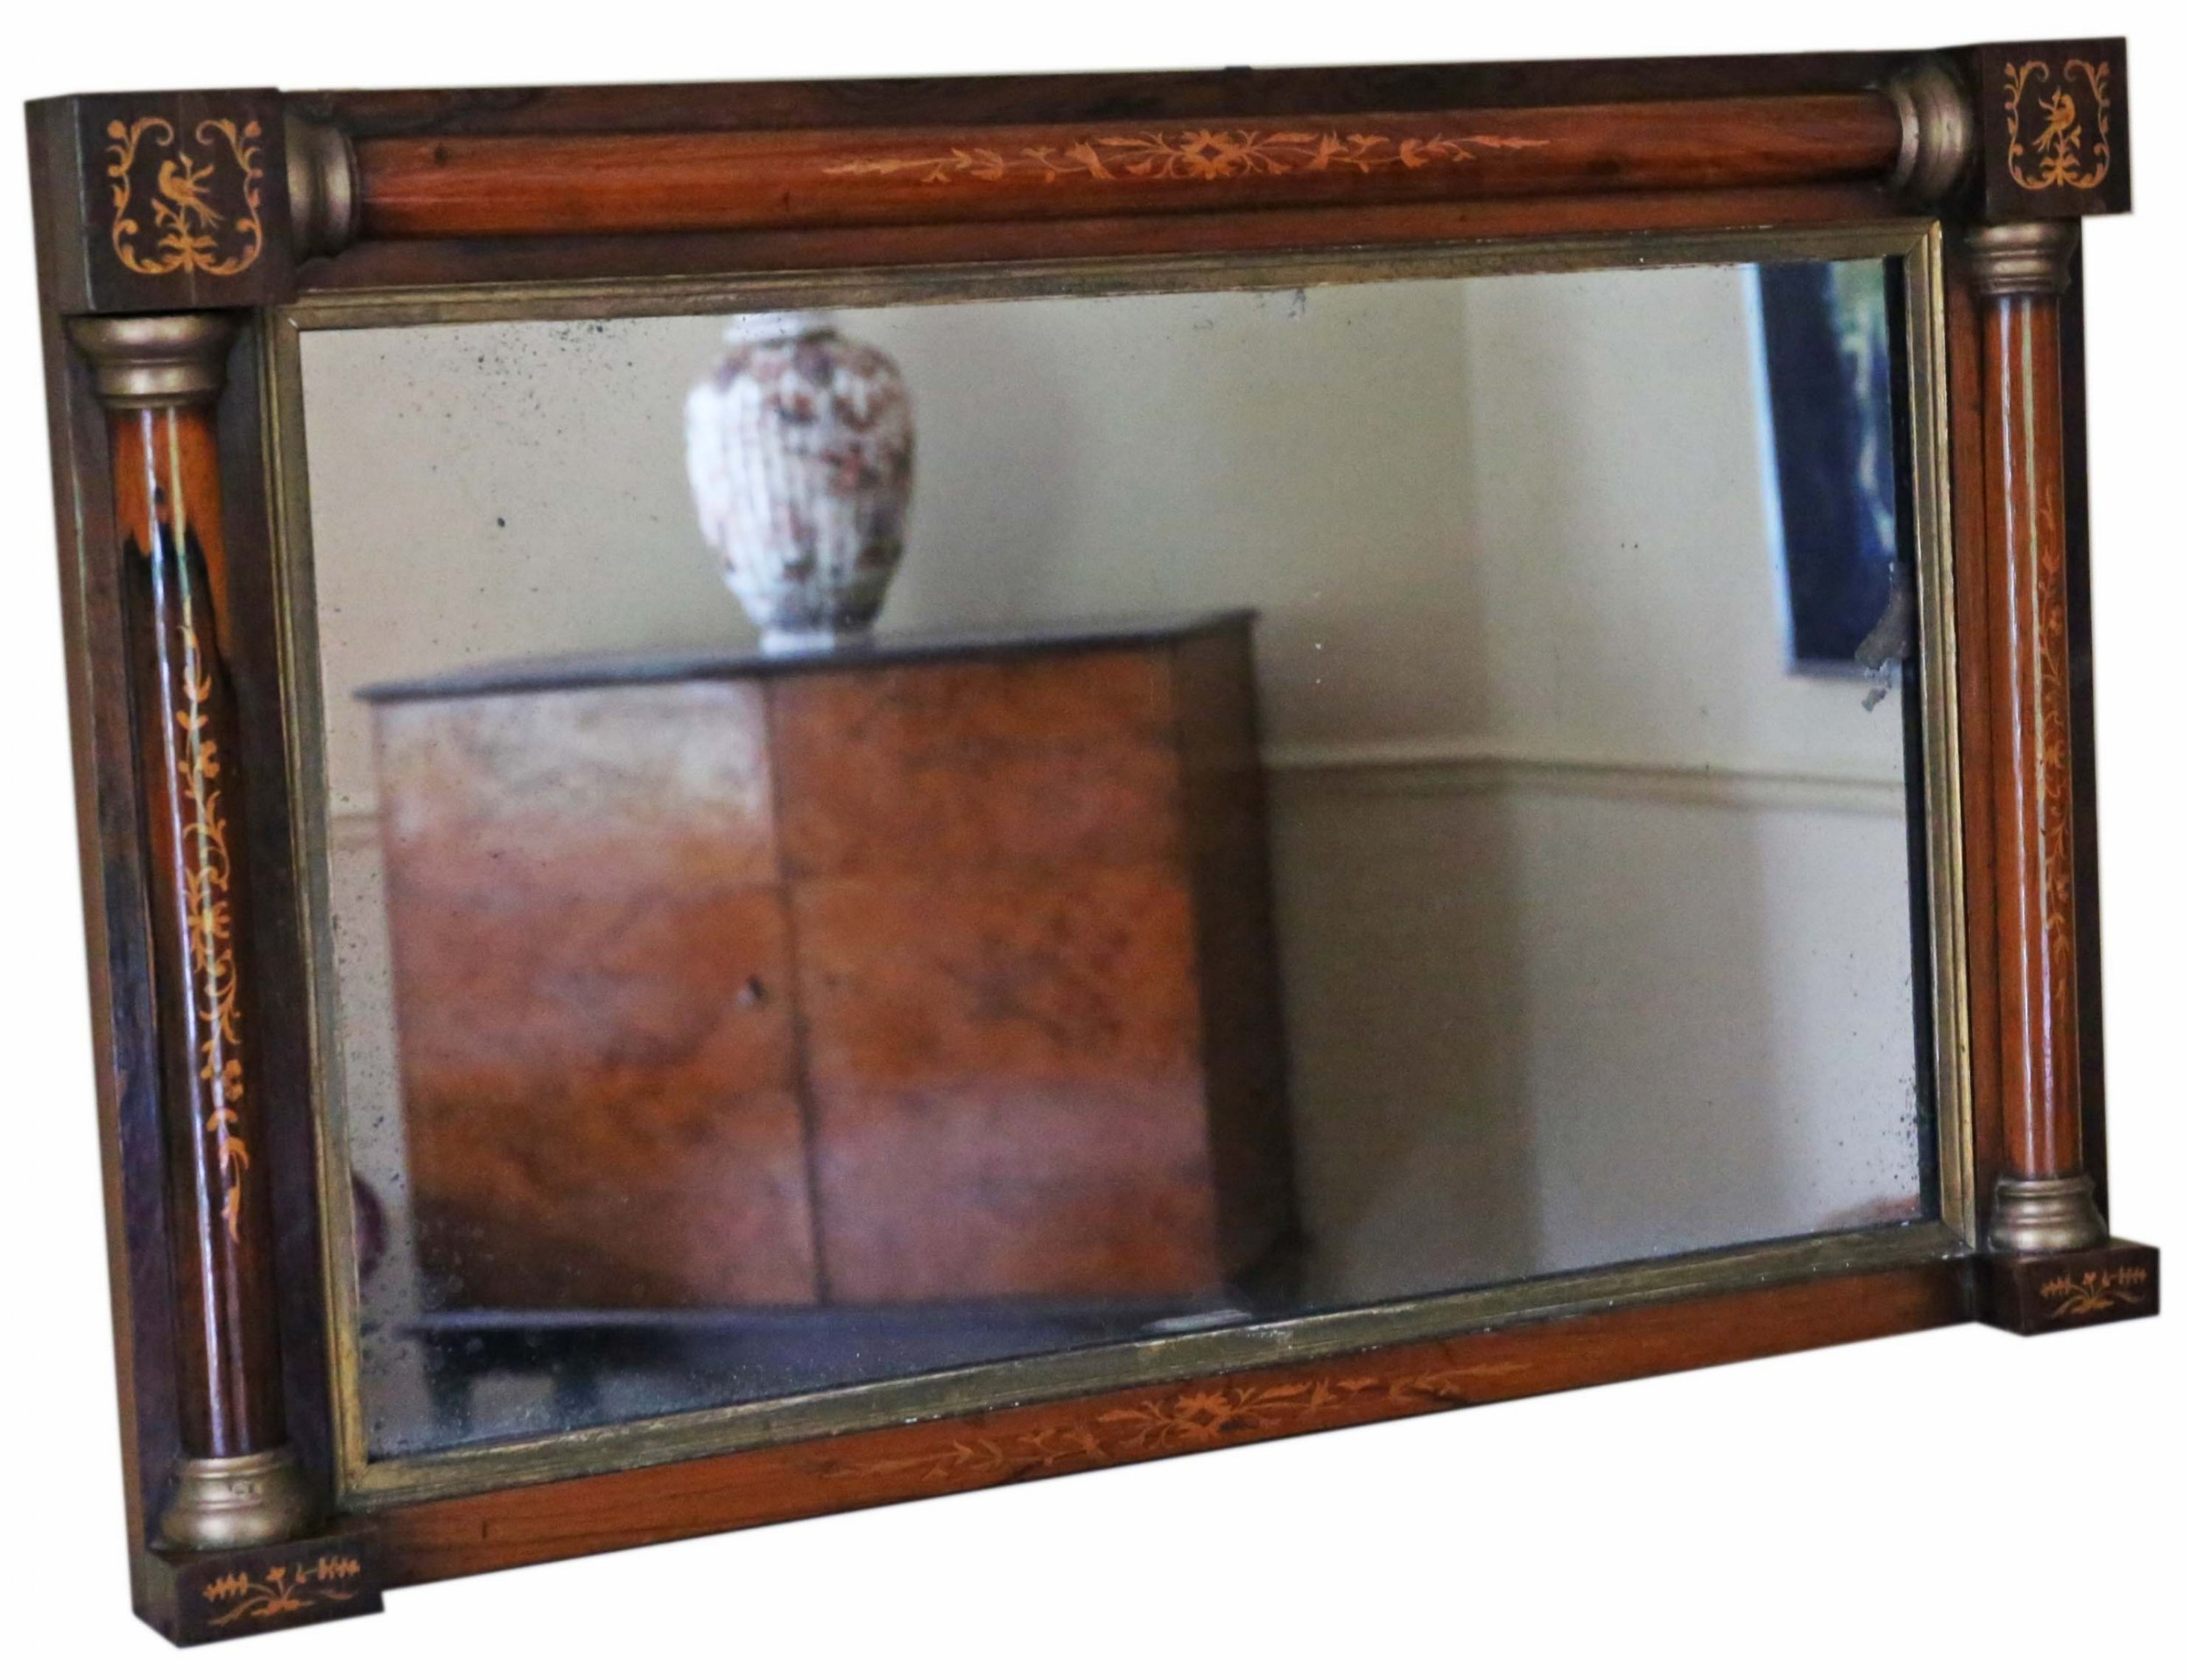 antique fine quality 19th century inlaid rosewood gilt overmantle wall mirror